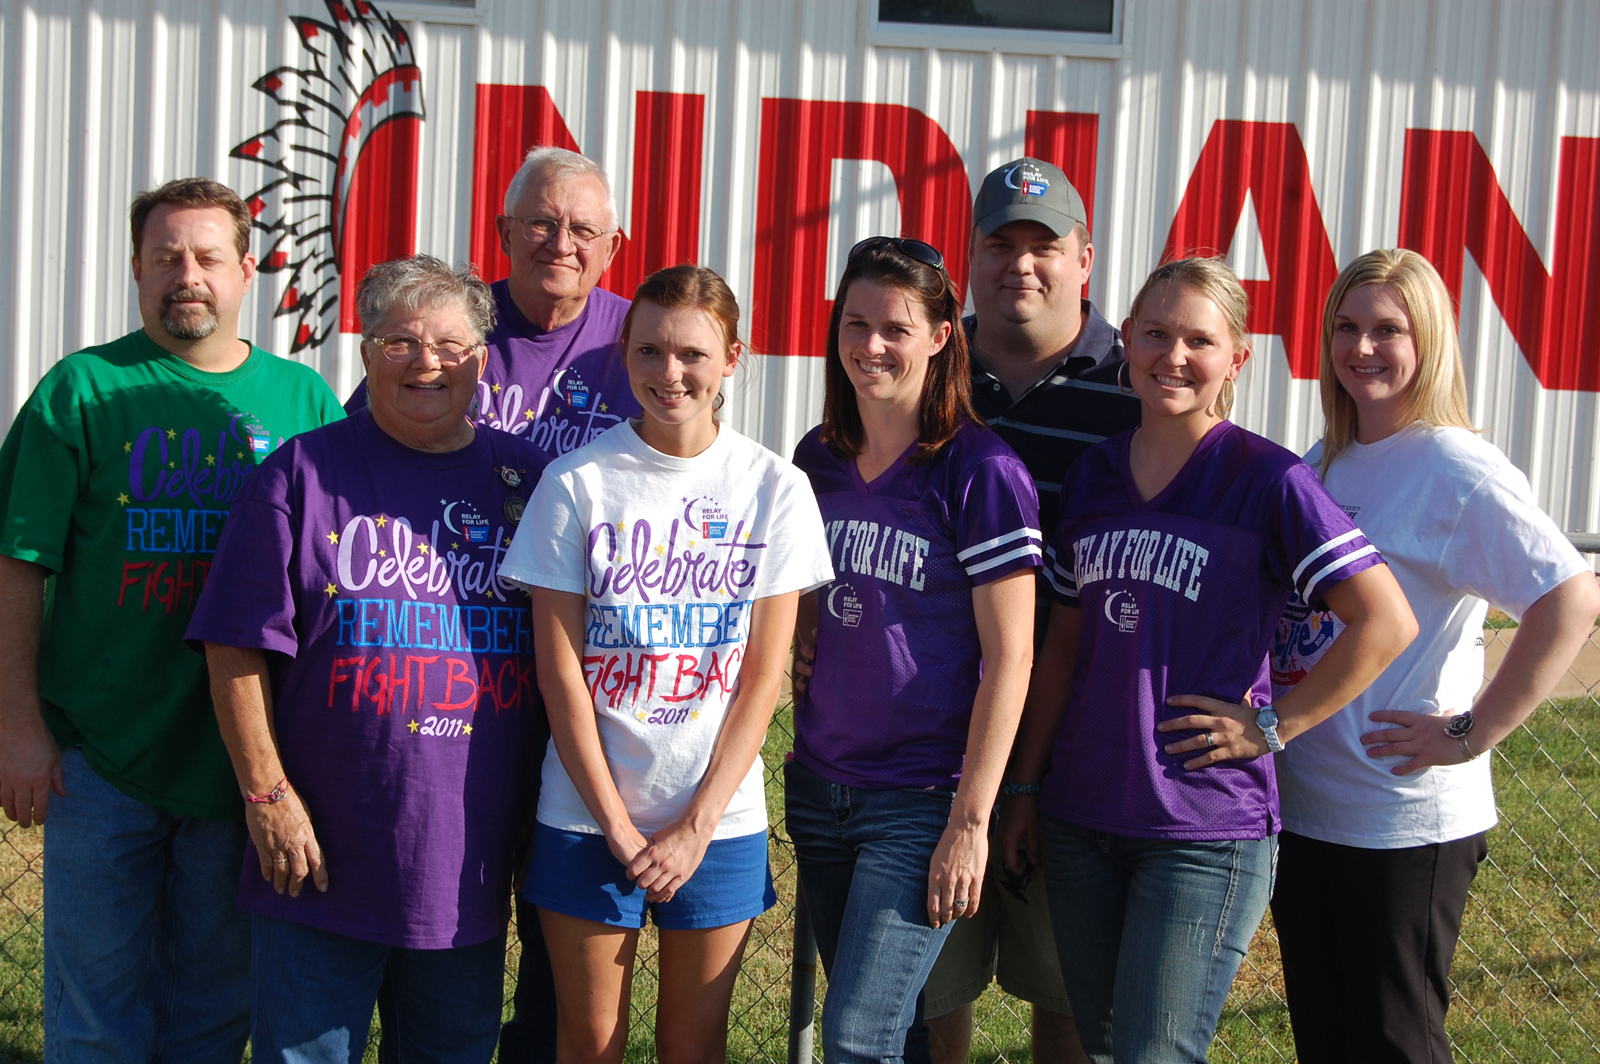 Pictured are members of Relay For LIfe 2012 Committee (l to r) John Phish, Charlotte Ramsey, Charles Ramsey, Tracy Paige, Kristy David, David Wickersham, Jessi Brymer and Amber Zellweger.